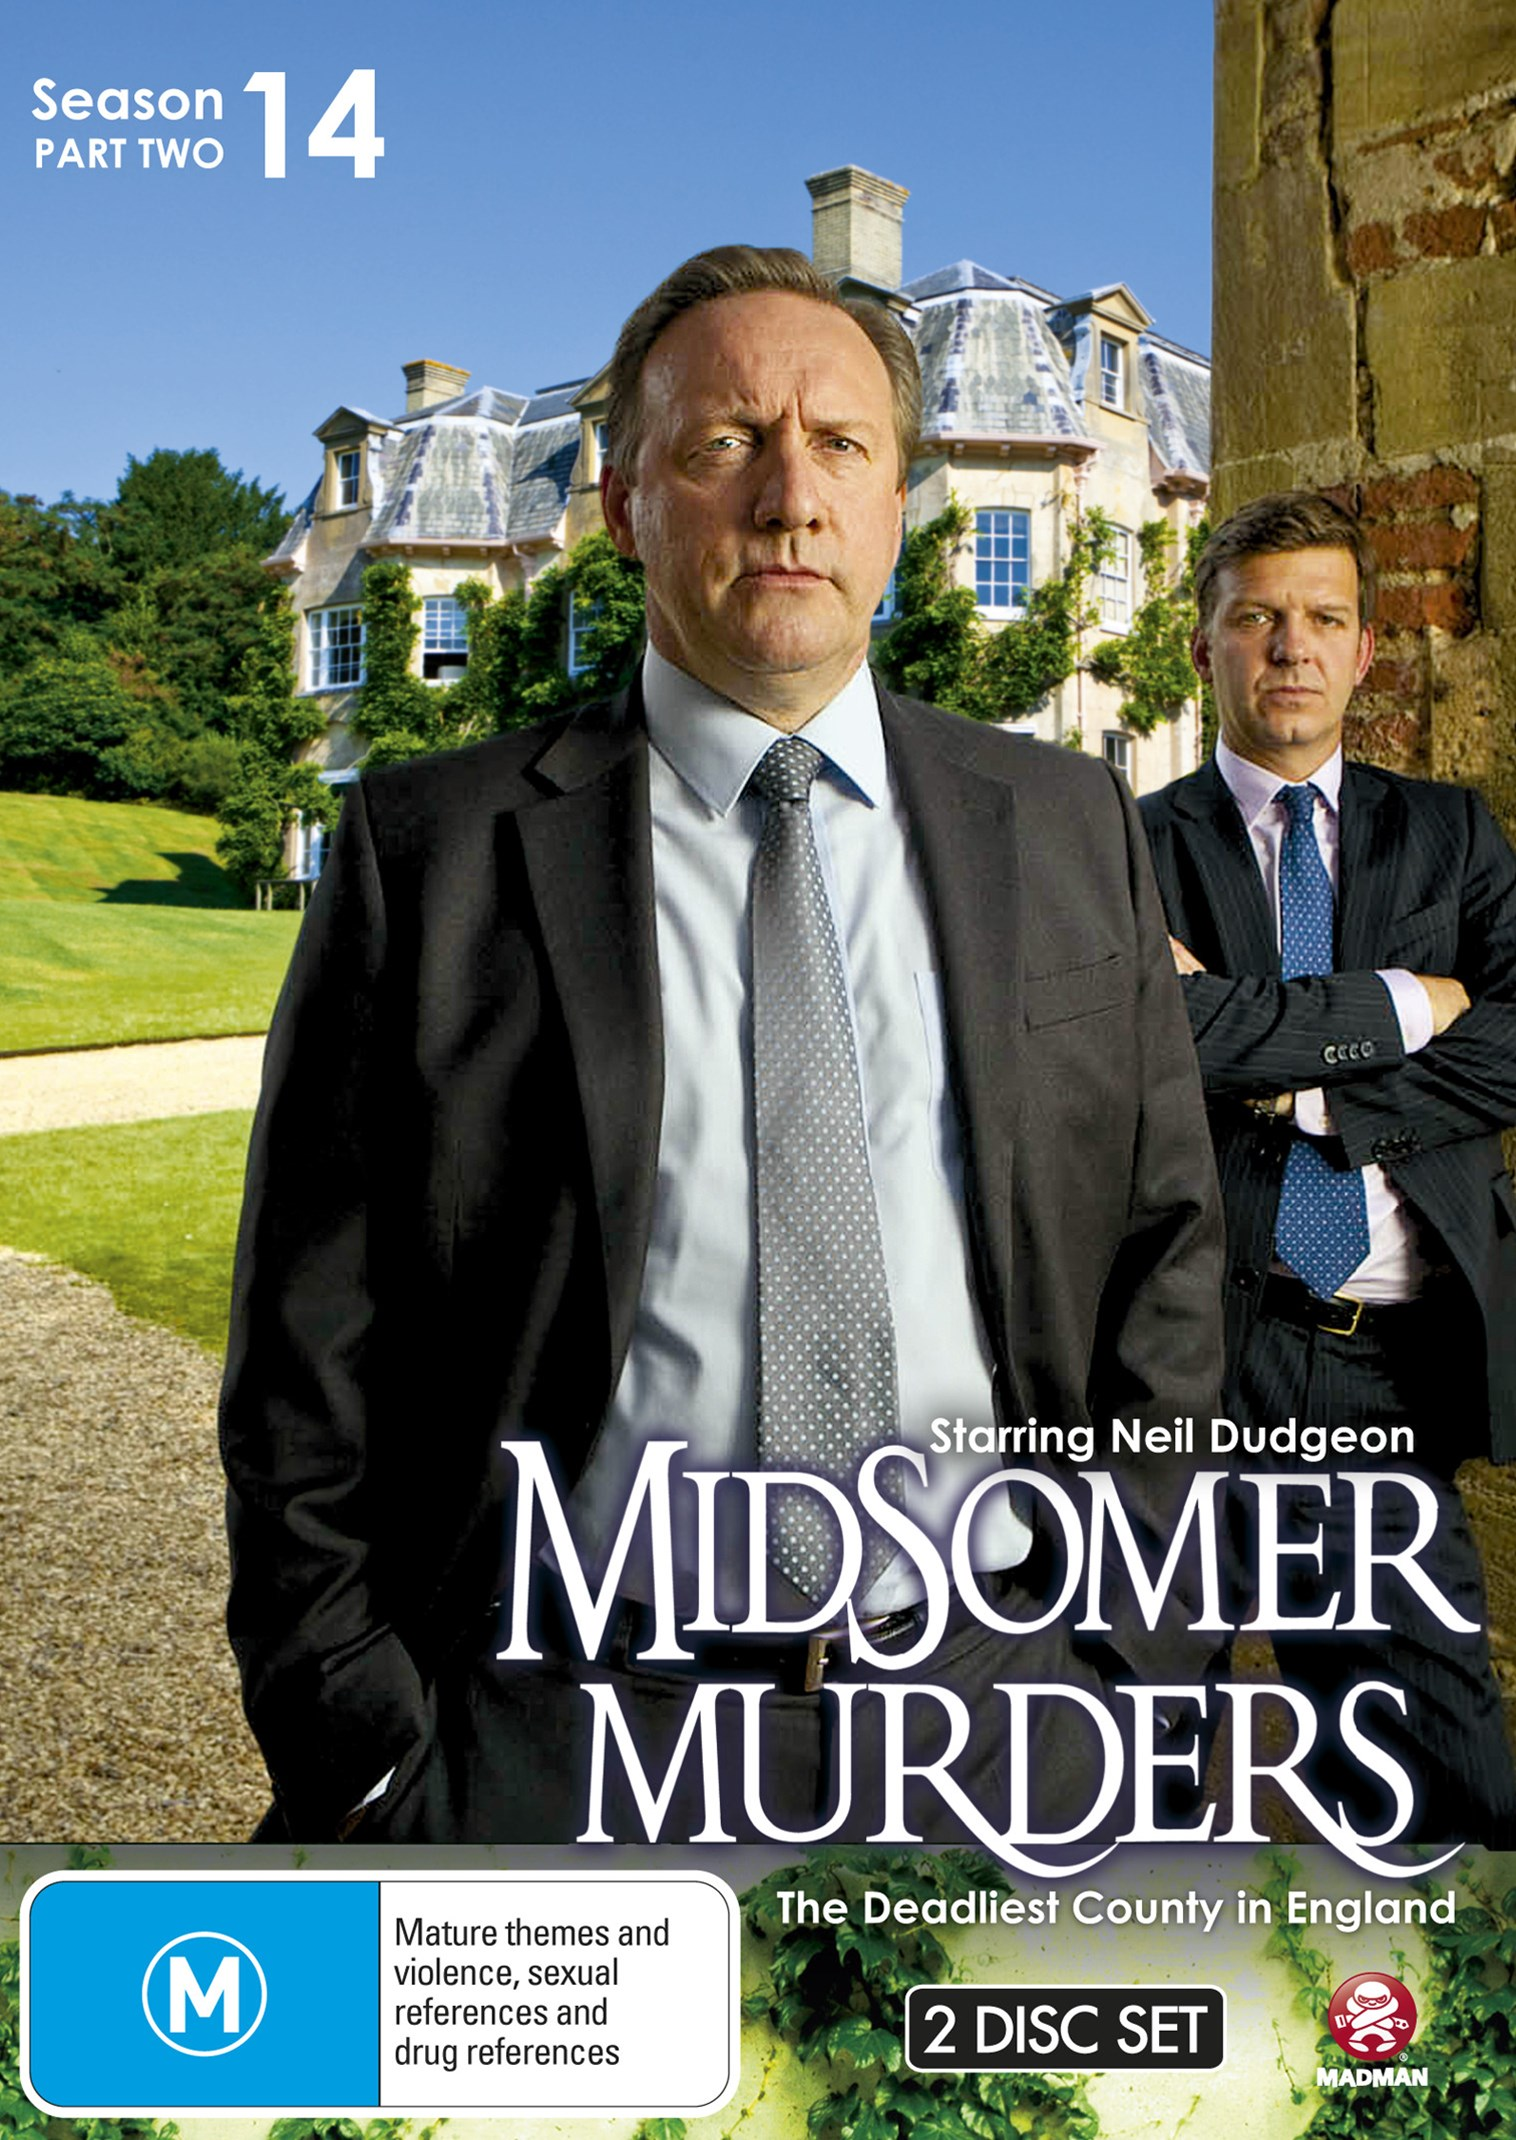 Midsomer Murders: Season 14 - Part 2